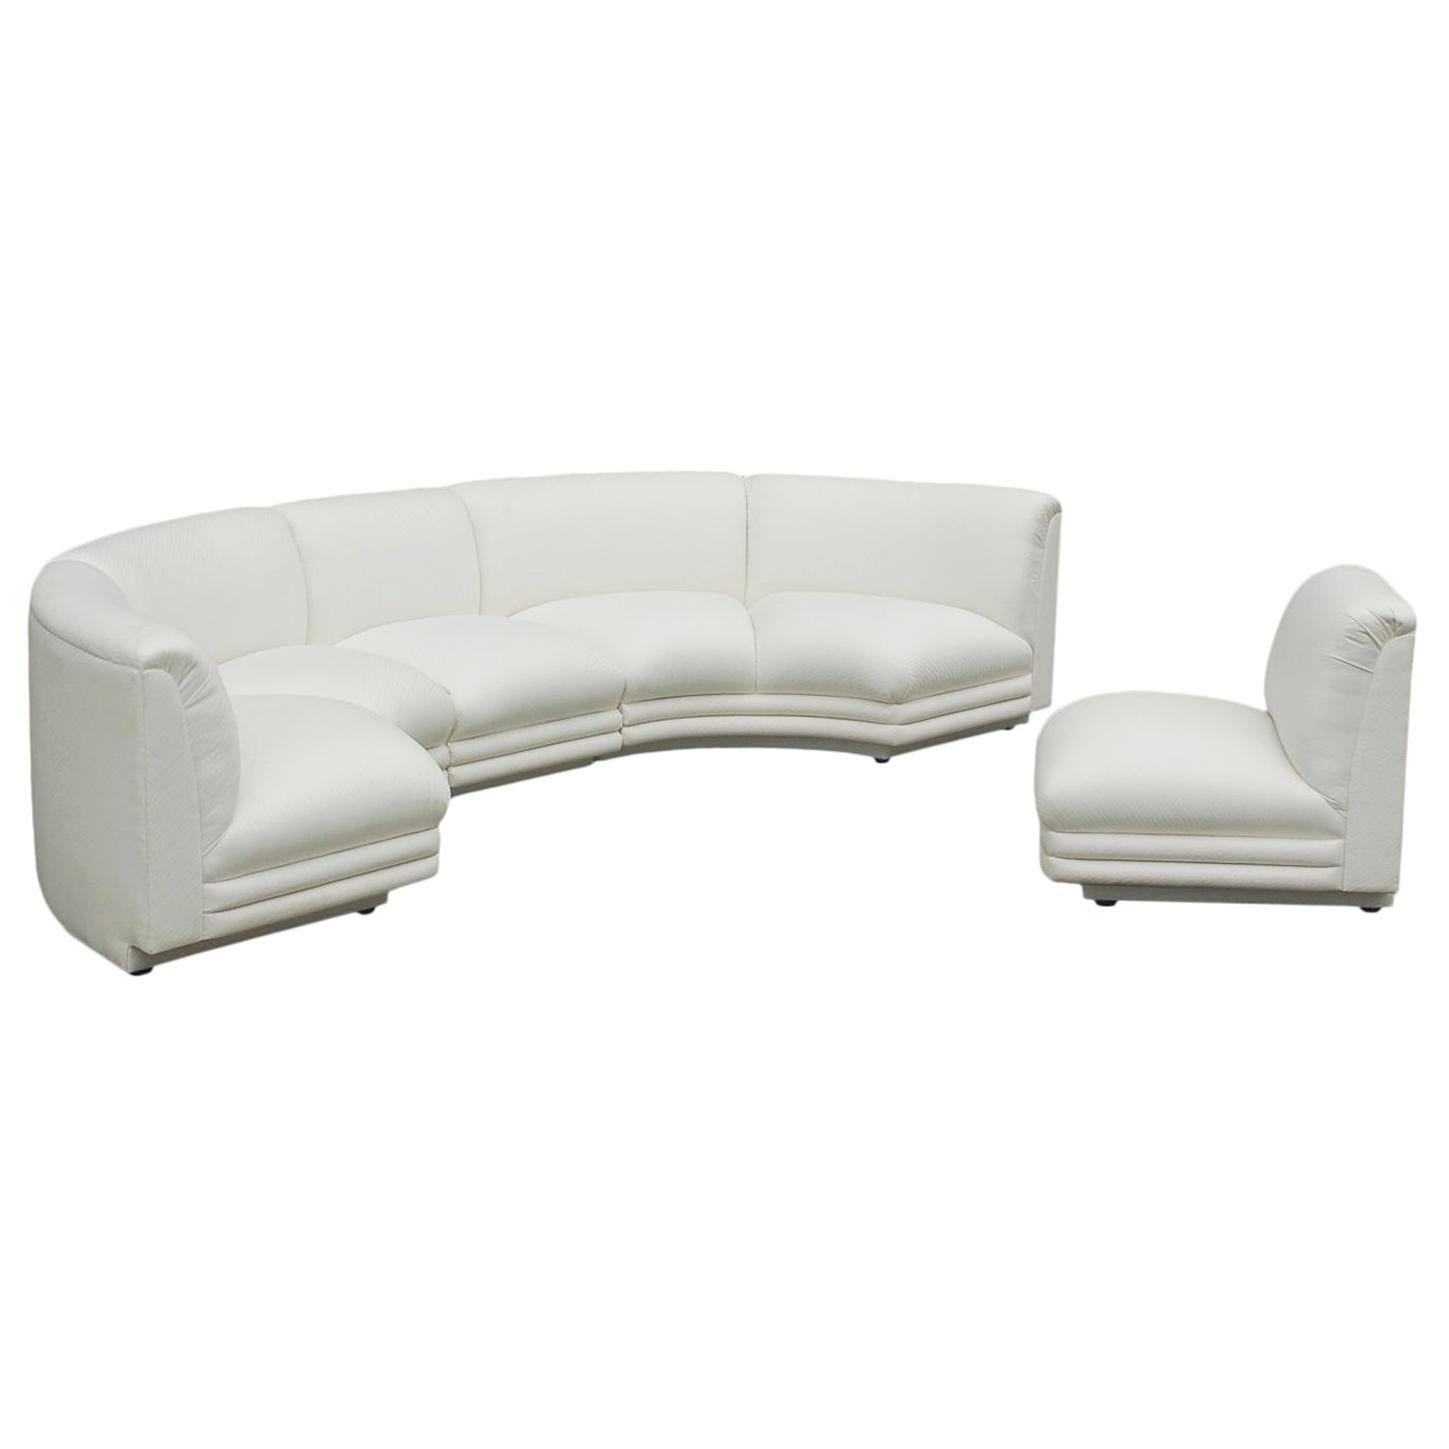 Mid-Century Modern Italian Curved Semi Circular Sectional Sofa in White Fabric